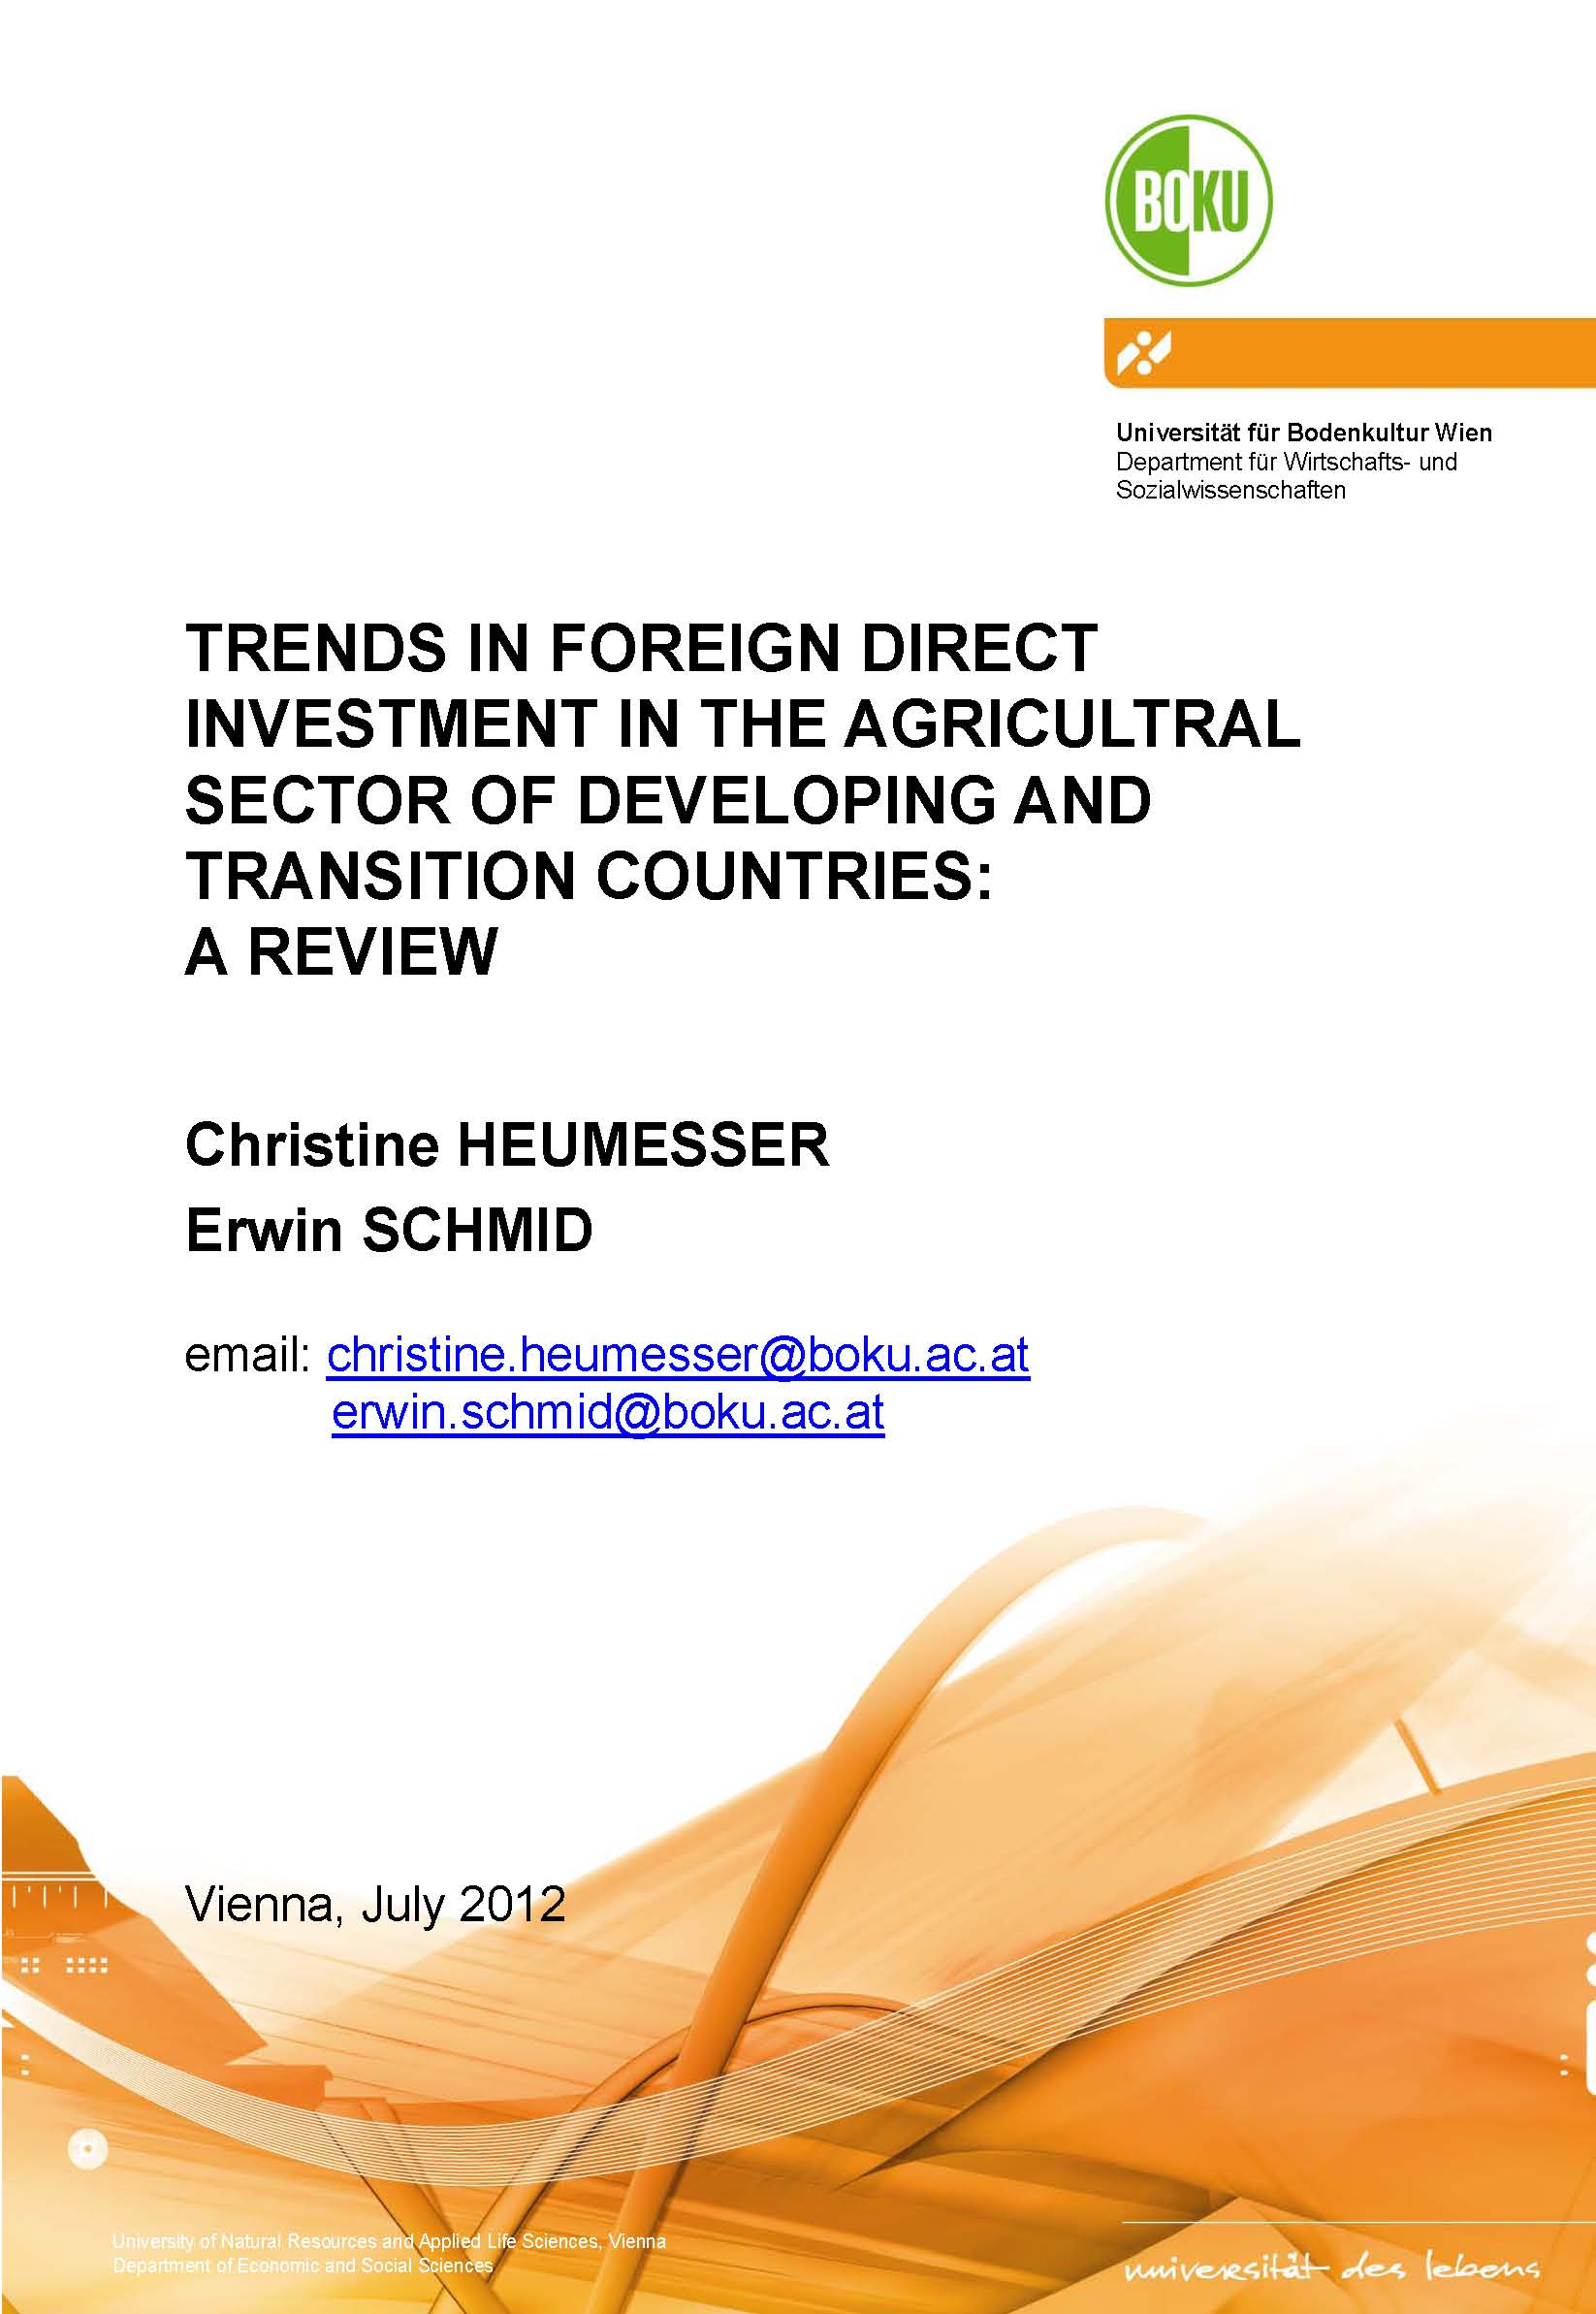 Trends in foreign direct investment in the agricultural sector of developing and transition countries : a review